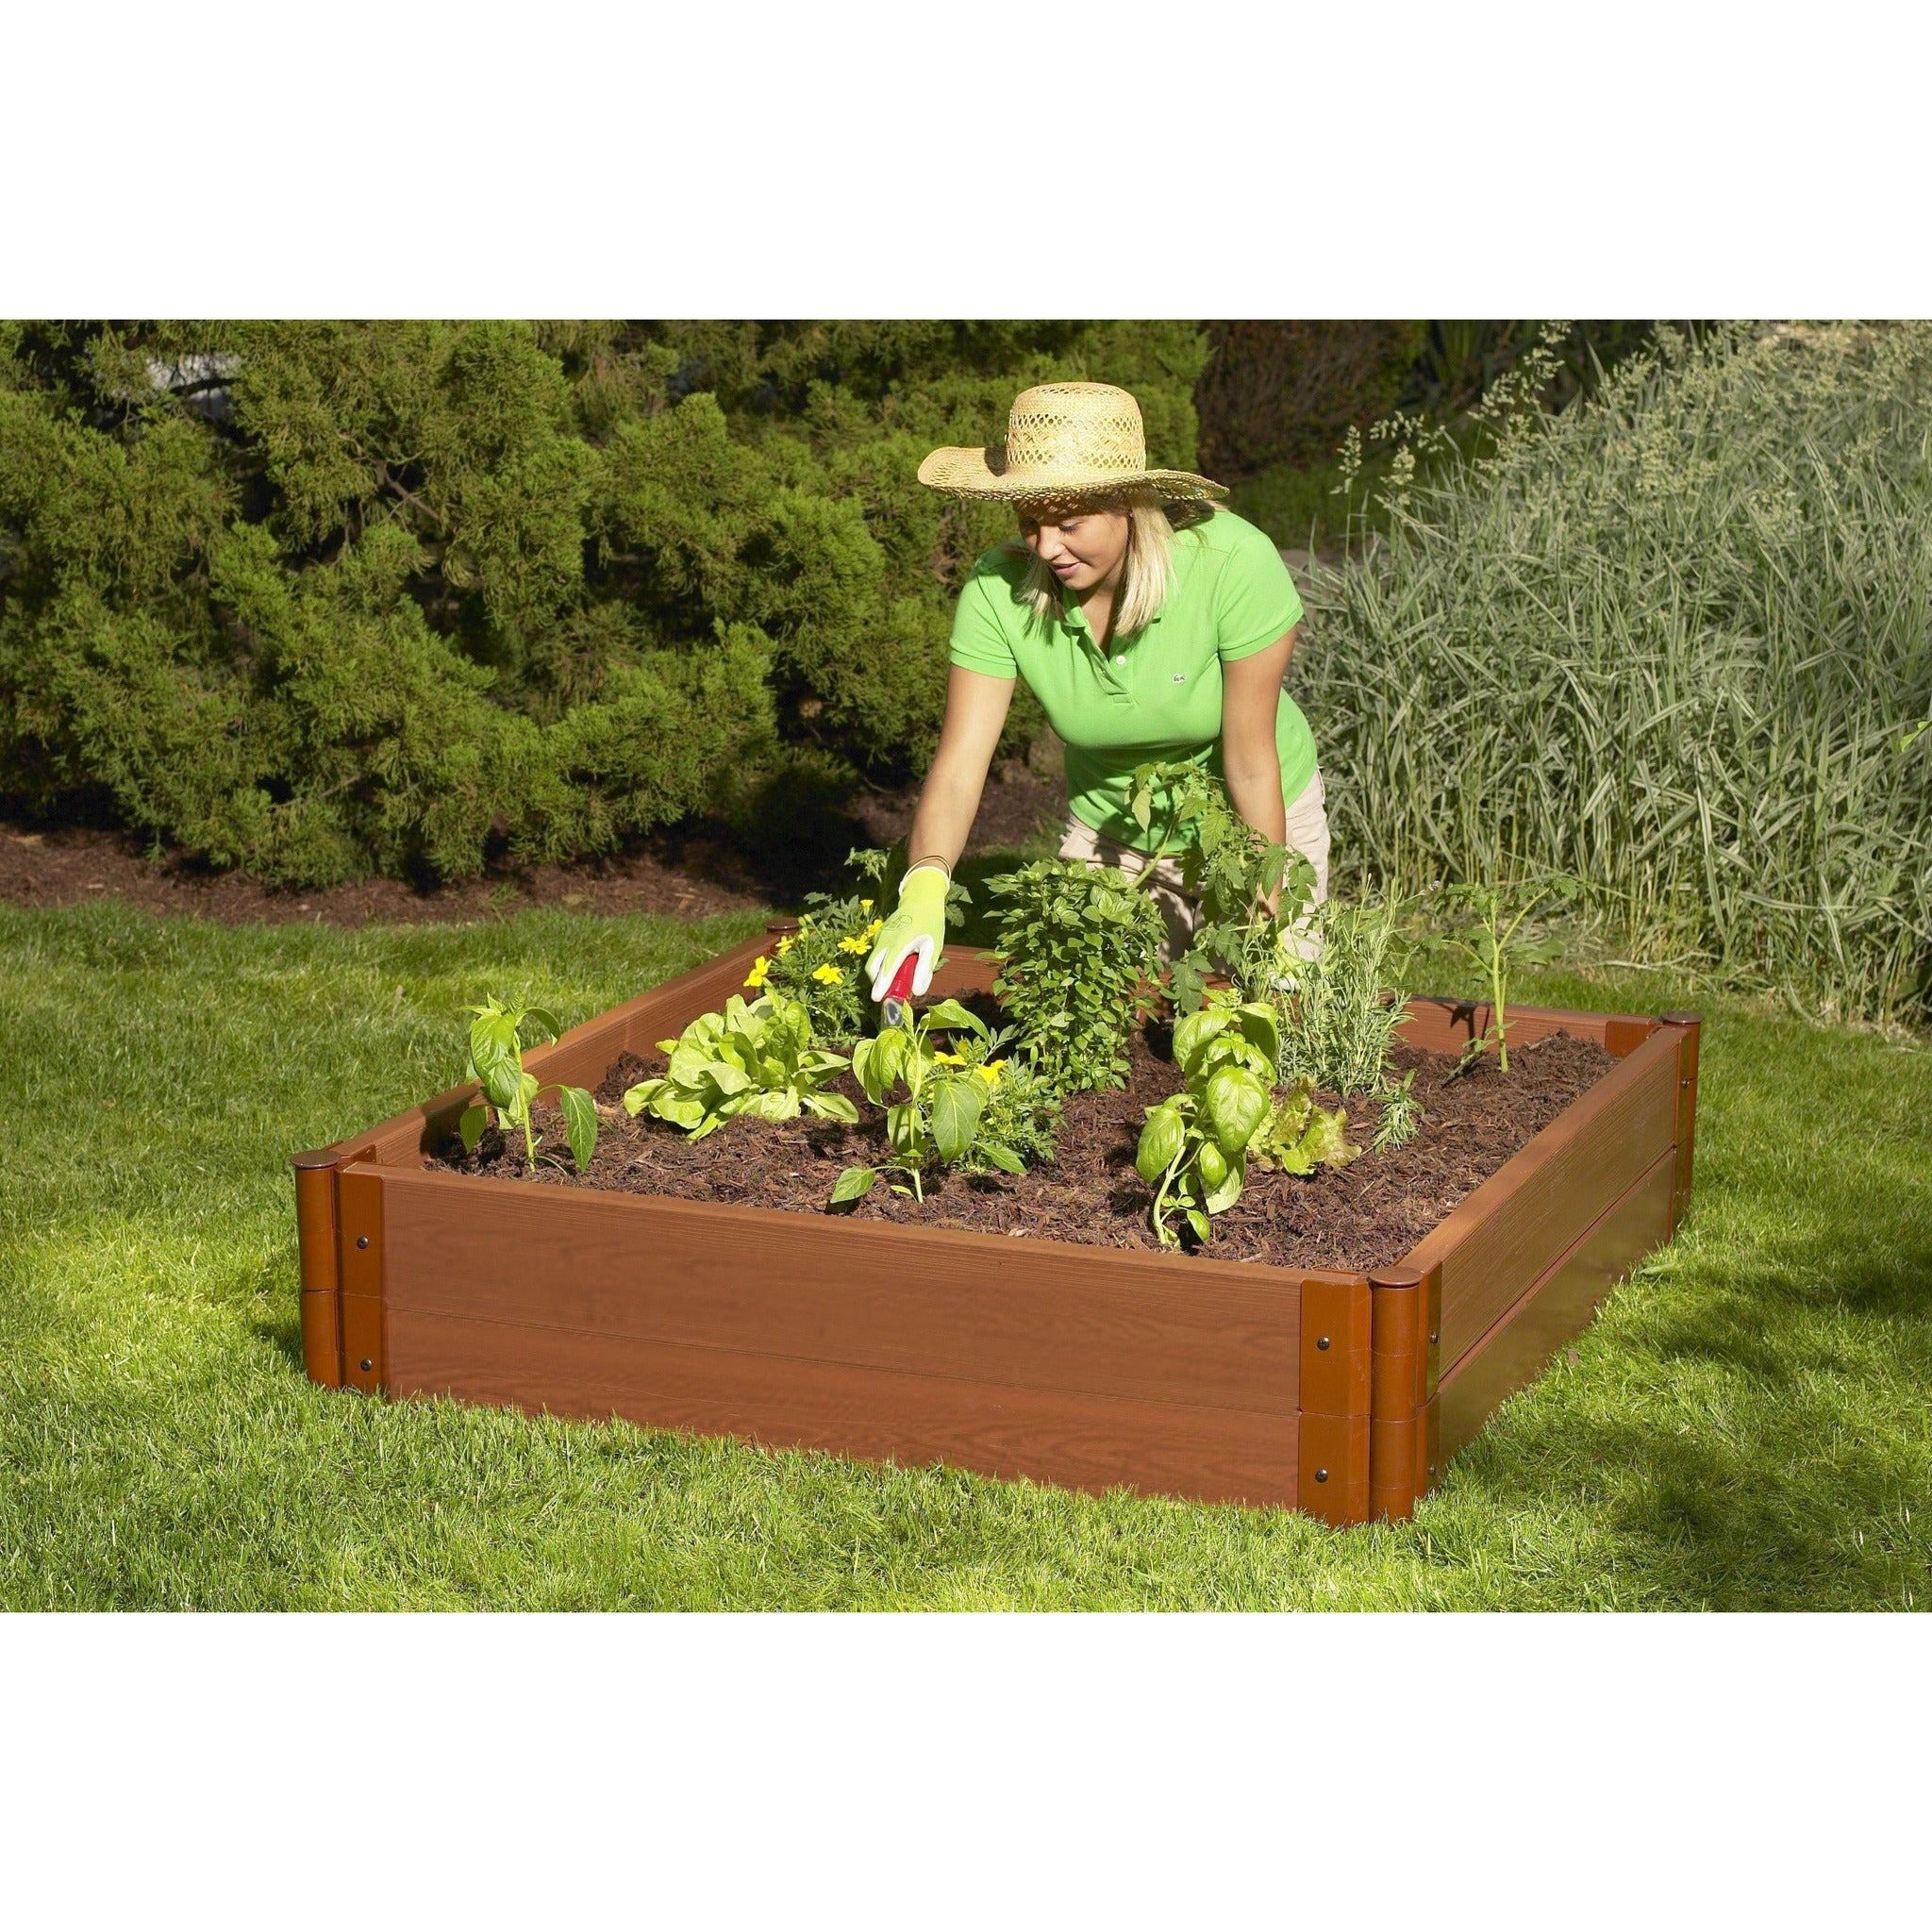 Exceptional Frame It All Composite Raised Garden Kit 4 X 4 Square 2 Inch Profile 2  Level ...